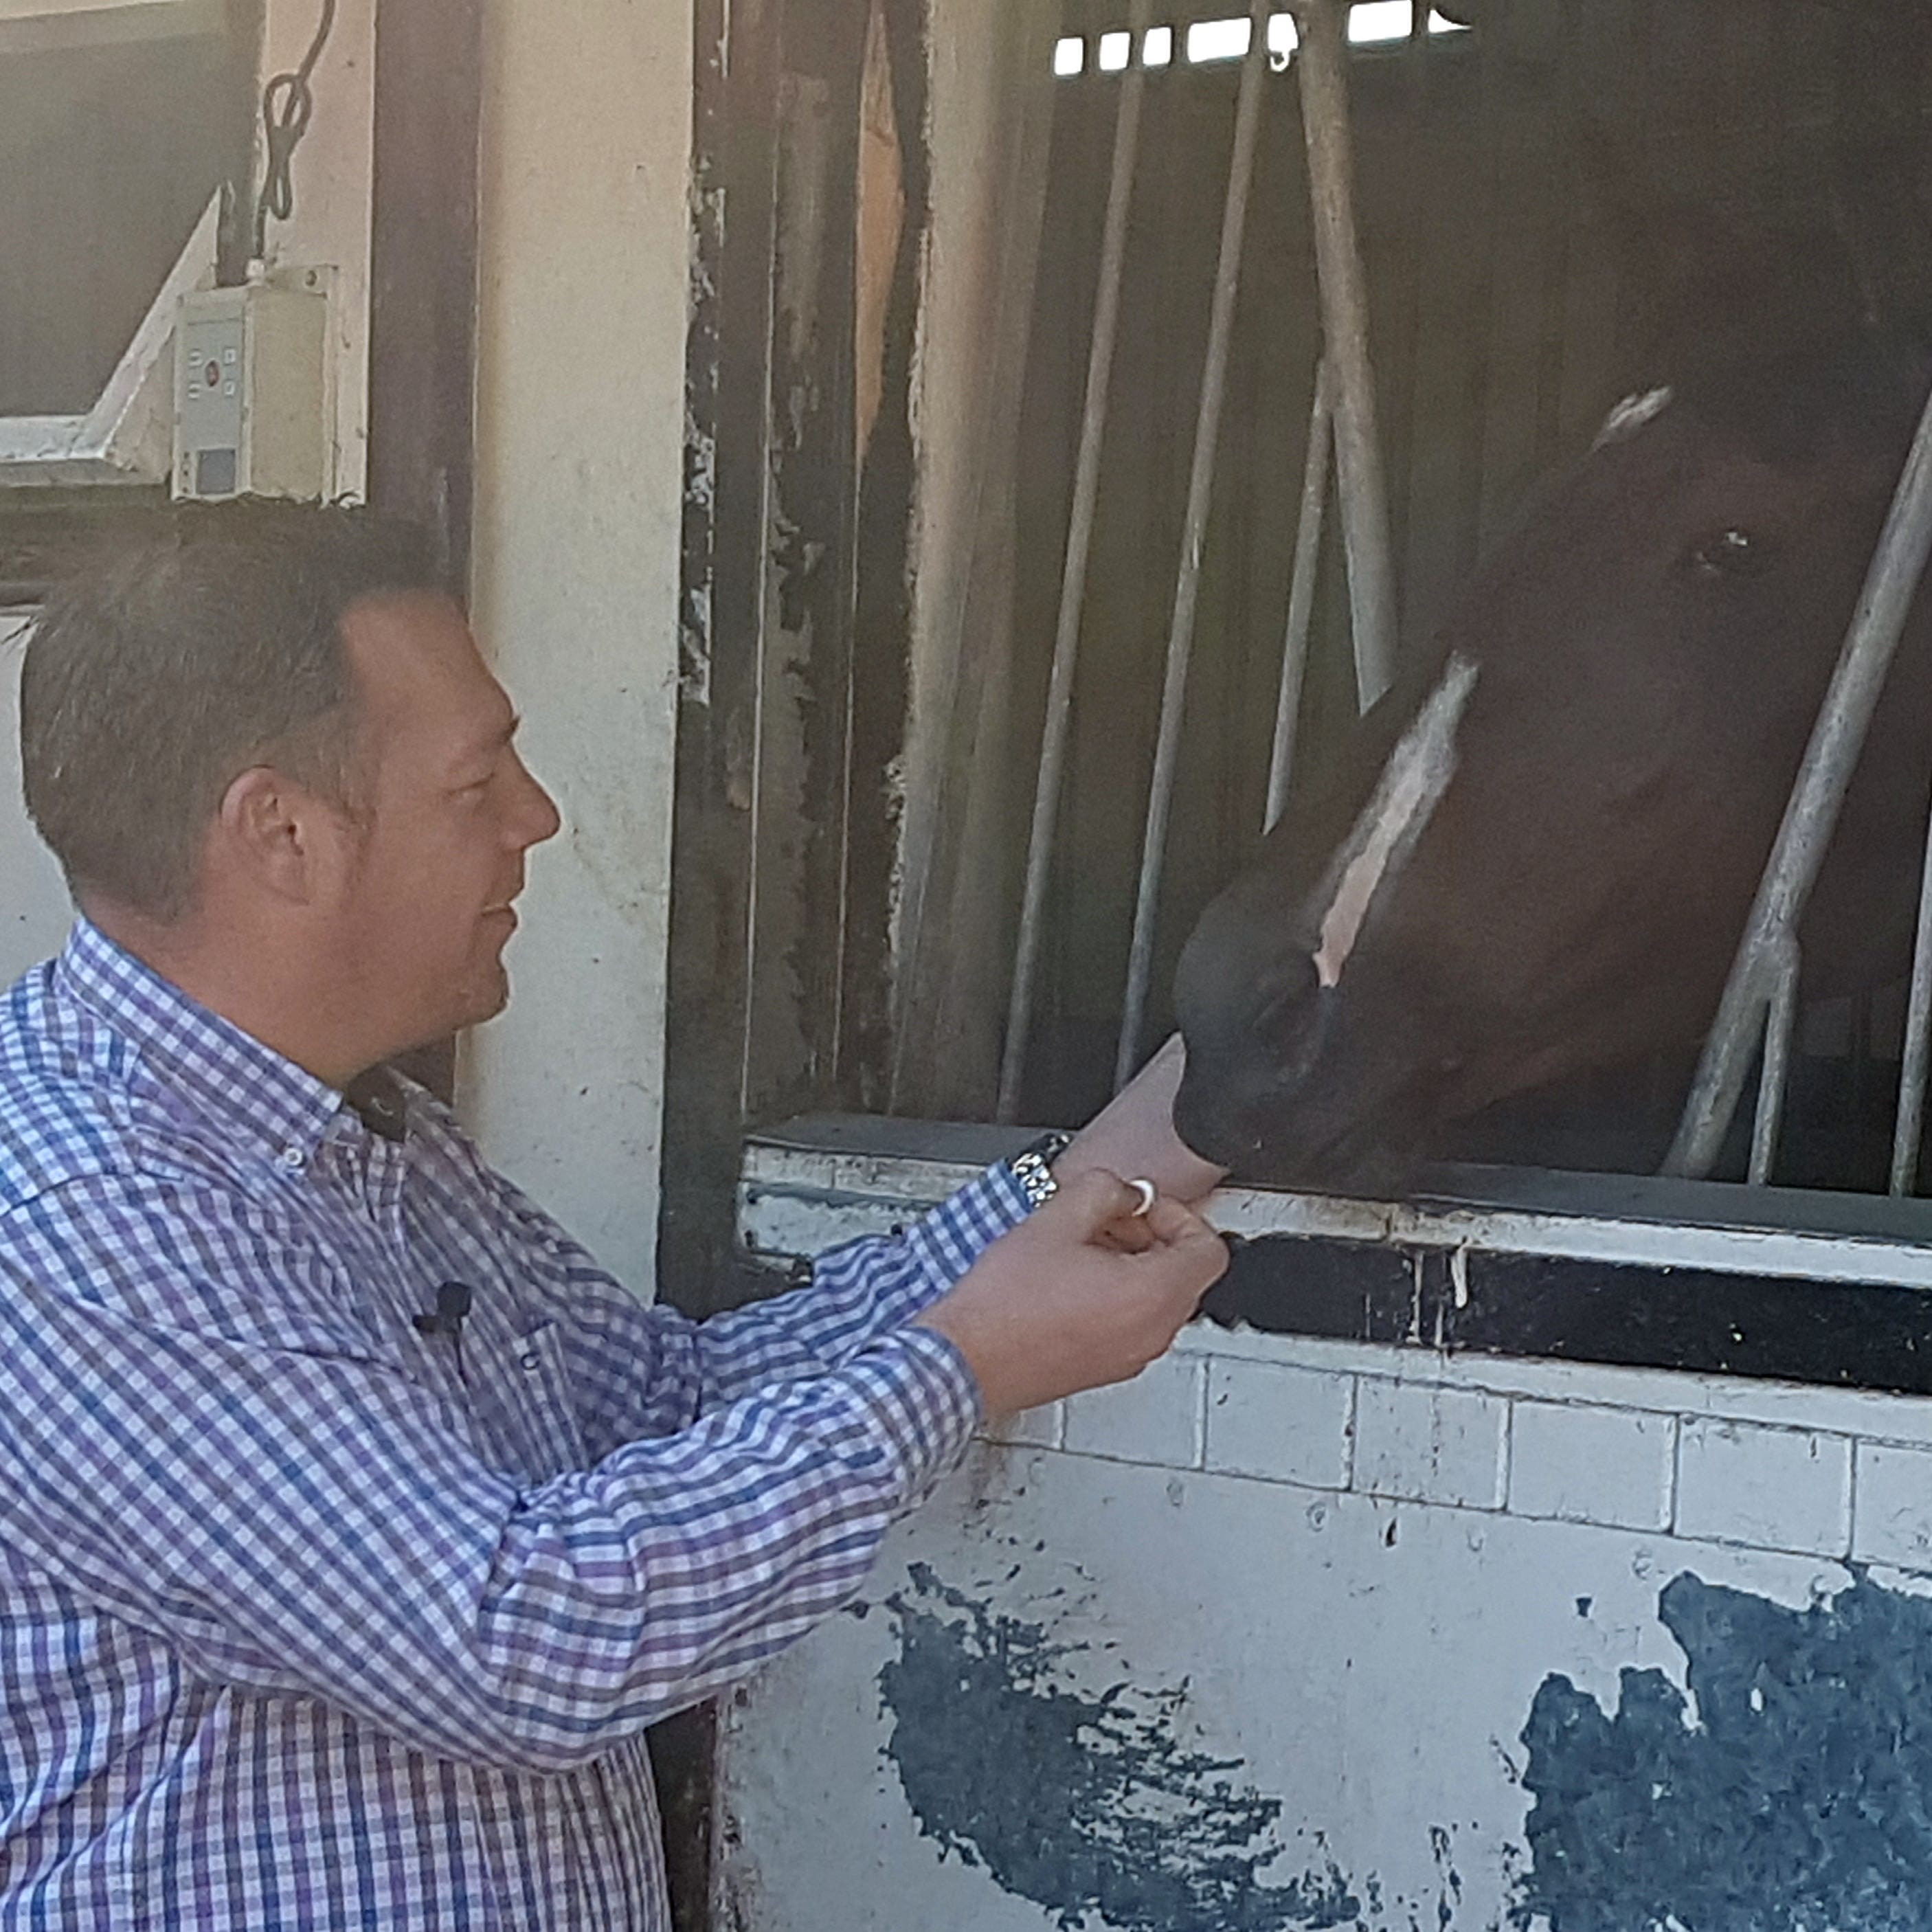 Owner John Dance gives Laurens a sweet in her box at Karl Burke's yard in Leyburn